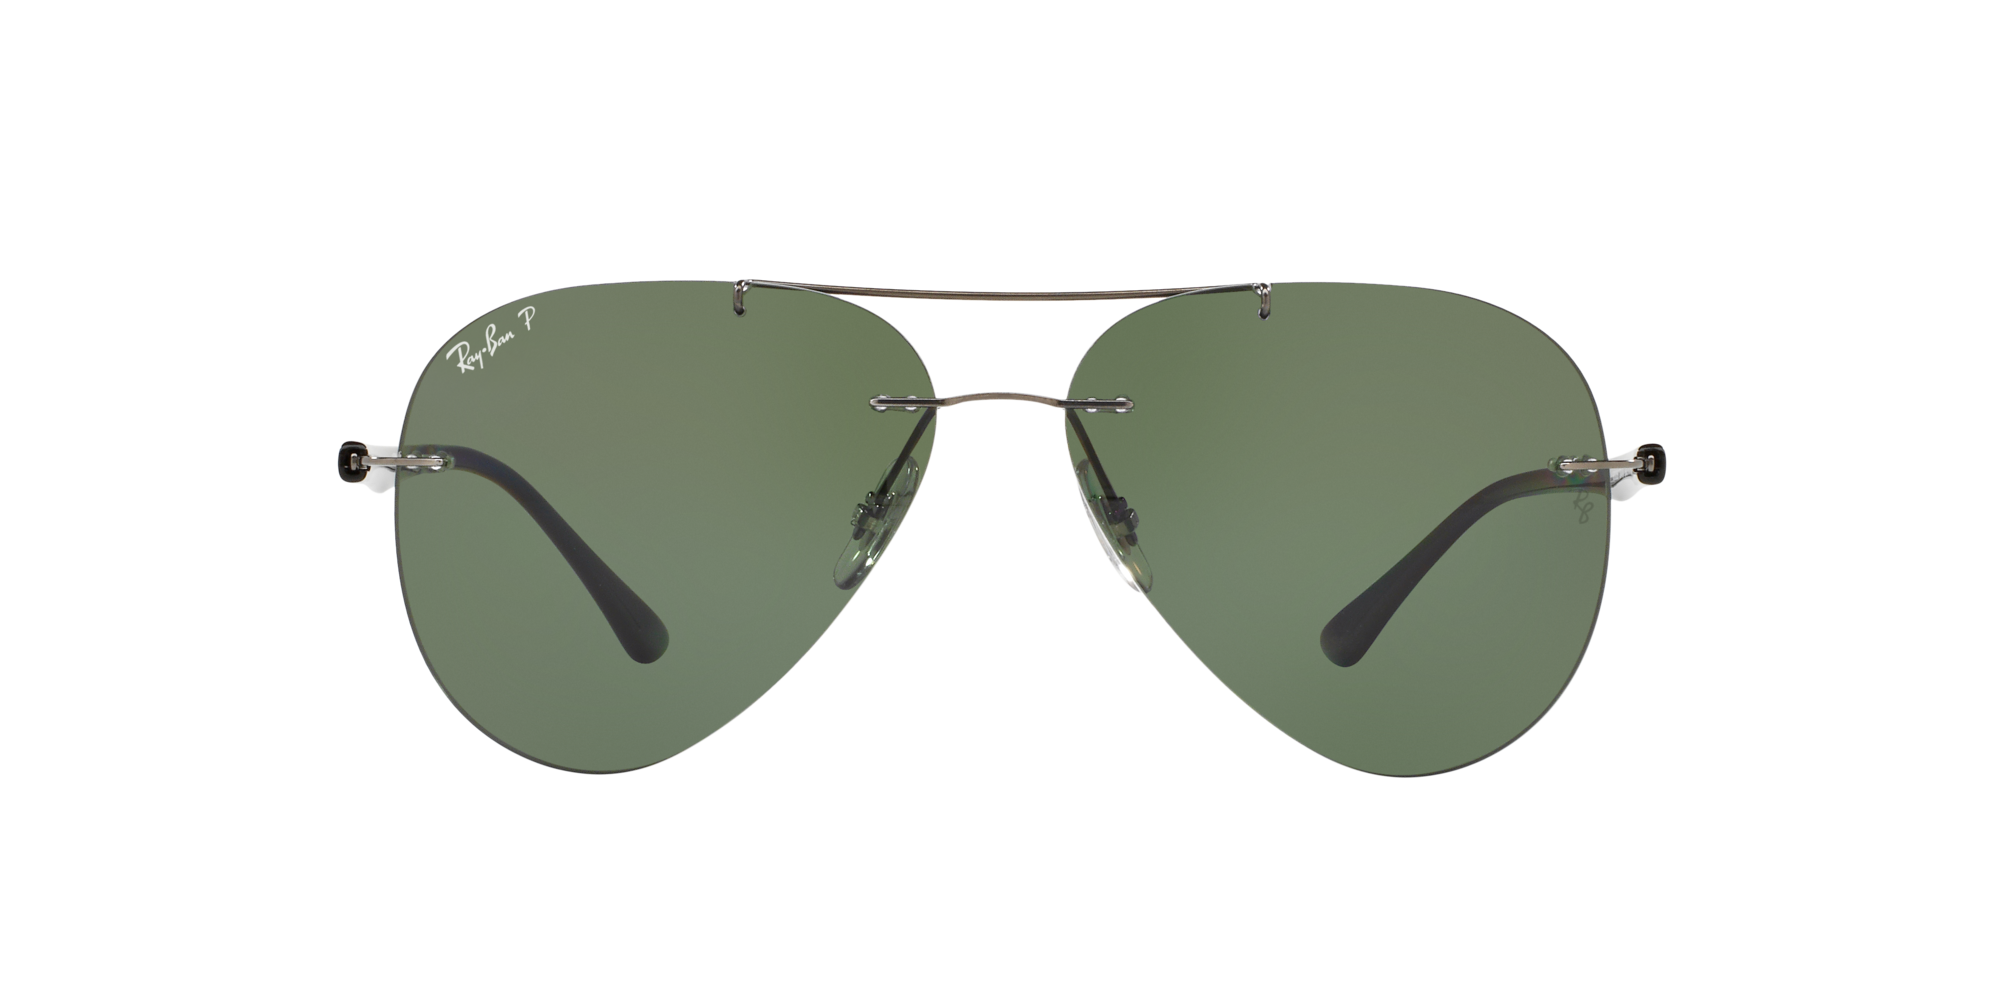 9173f9757d004 gafas de sol RAY-BAN AVIATOR RB 8058 004 9A POL. 360° Product View 360°  Product View ...